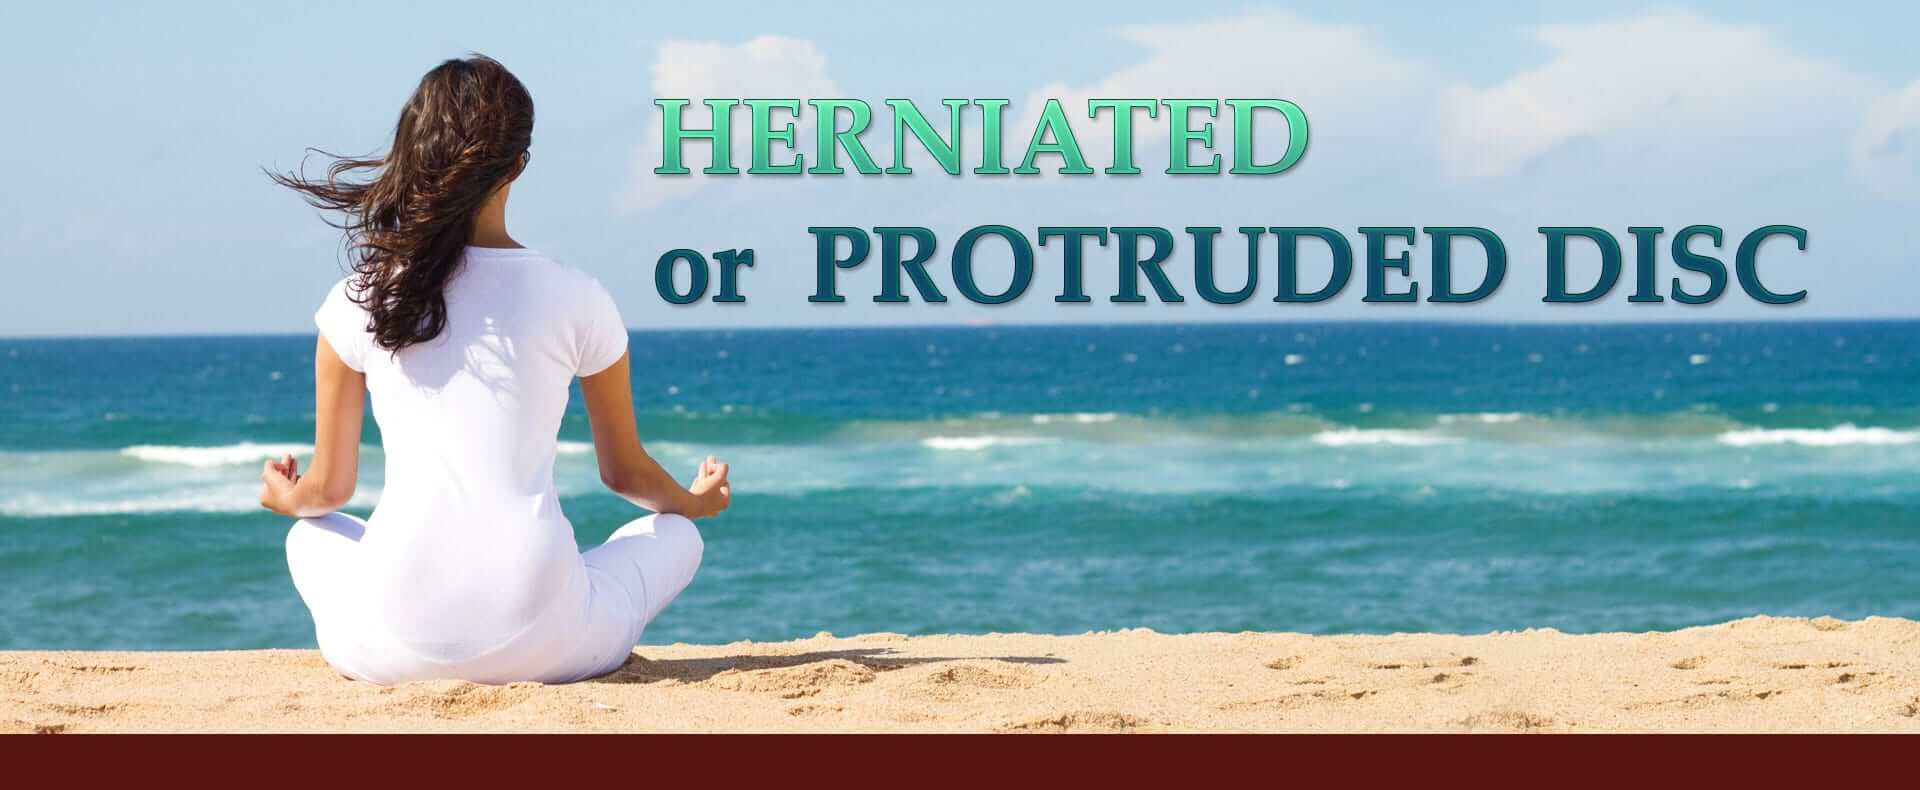 Herniated or protruded disc